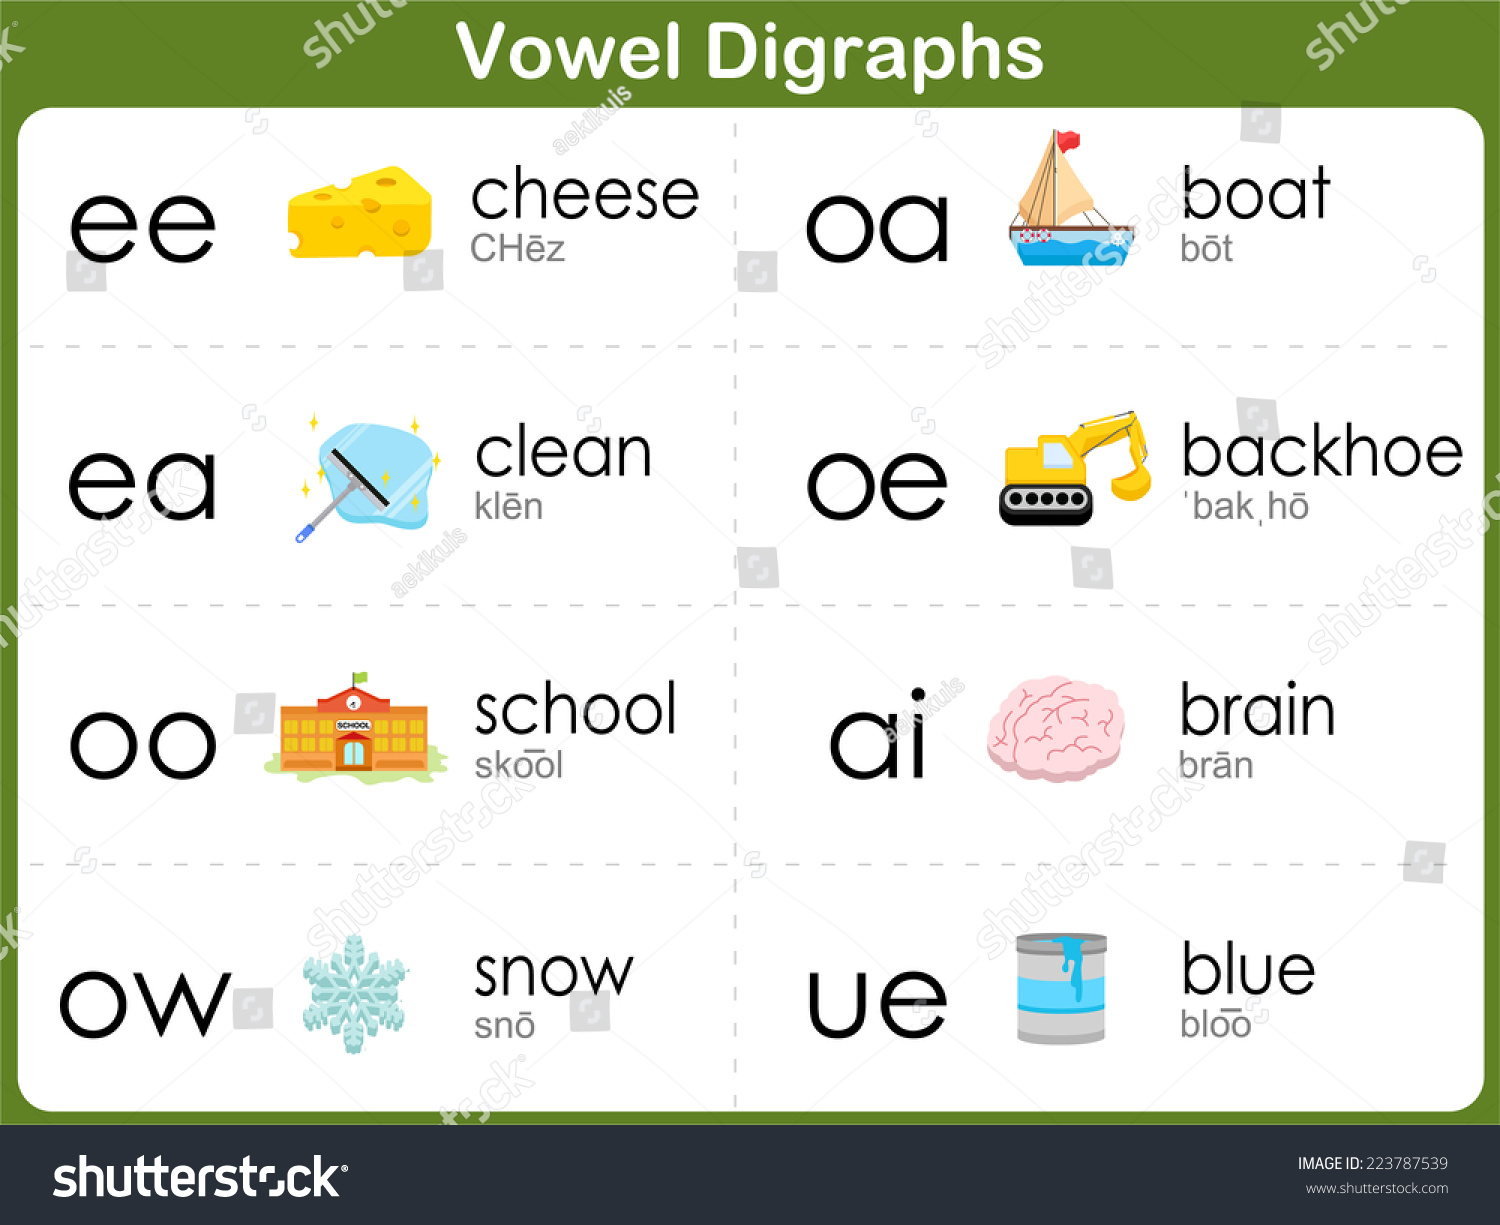 Vowel Digraphs Worksheet Kids Stock Vector